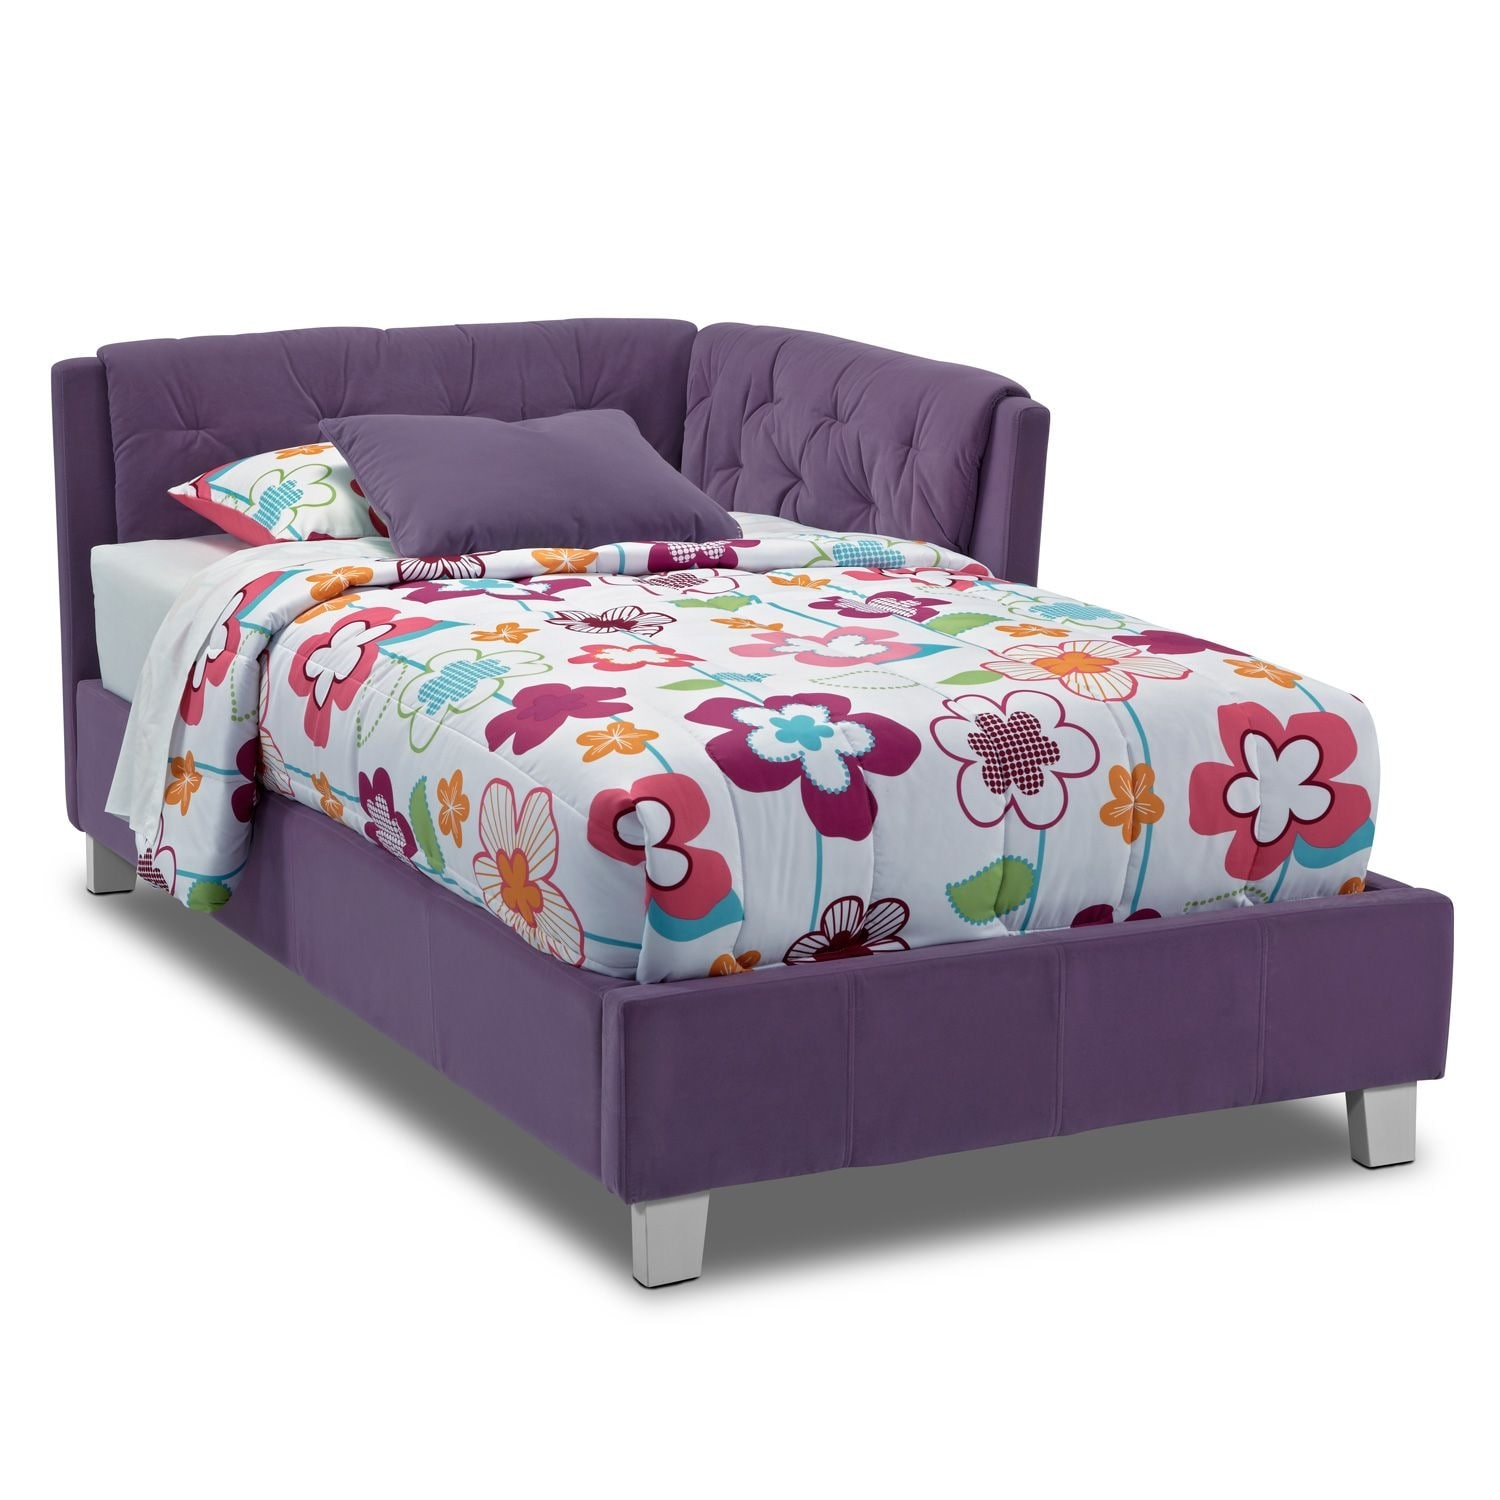 Corner Bed Furniture Bedroom Furniture Kids Furniture Jordan Corner Bed Value City Furniture Jordan Corner Bed Value City Furniture And Mattresses